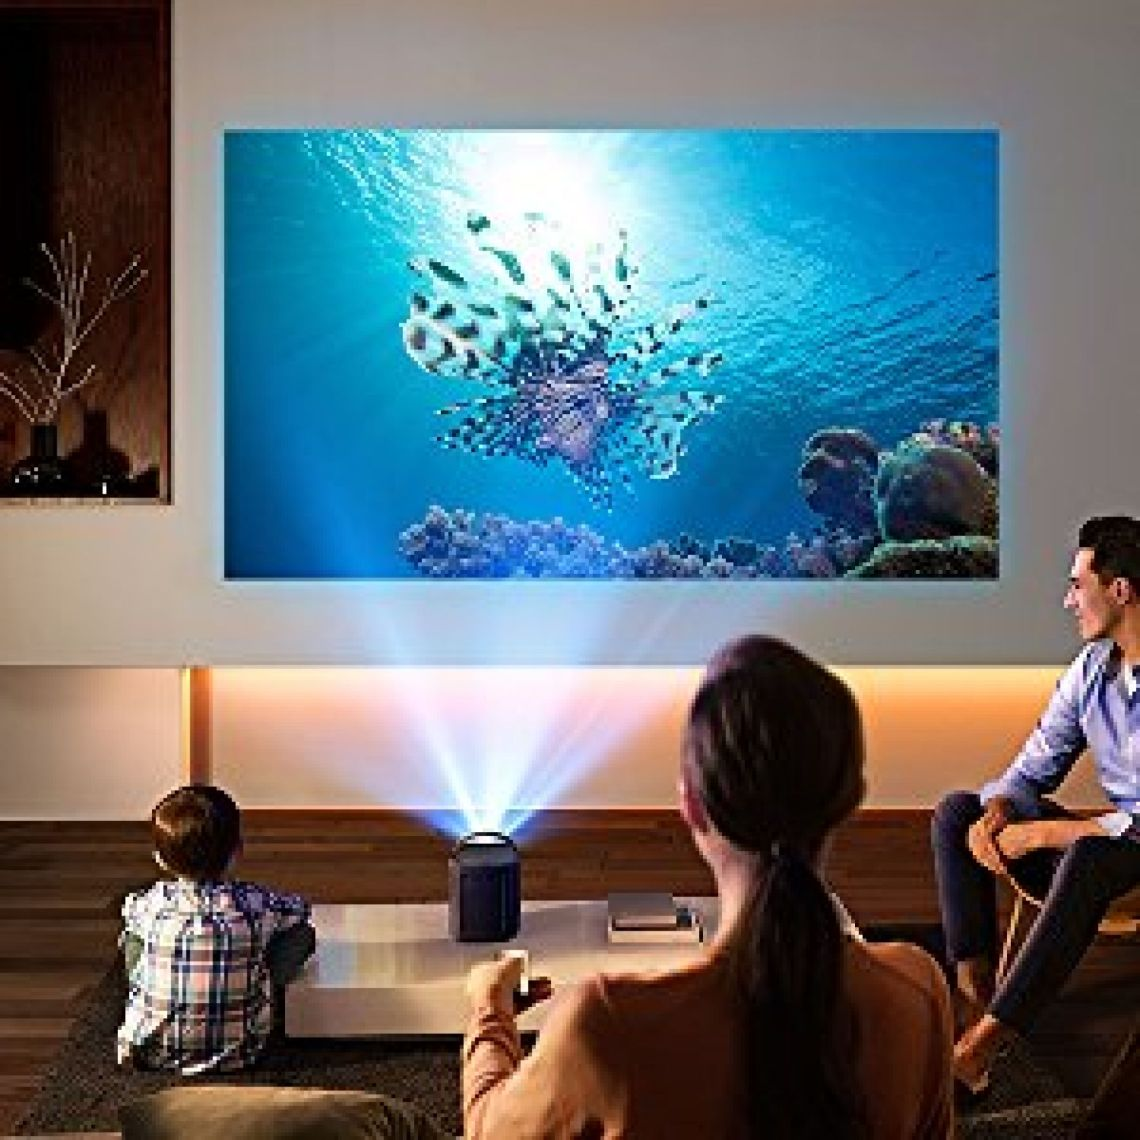 Amazon.com: Nebula by Anker Mars II Portable Projector with 720p DLP Picture, Dual 10W Speakers, Android 7.1, 1 Second Auto-Focus, 30–150 in Screen, 4-Hour Playtime, Broad Connectivity, and Wireless Screen Cast: Electronics